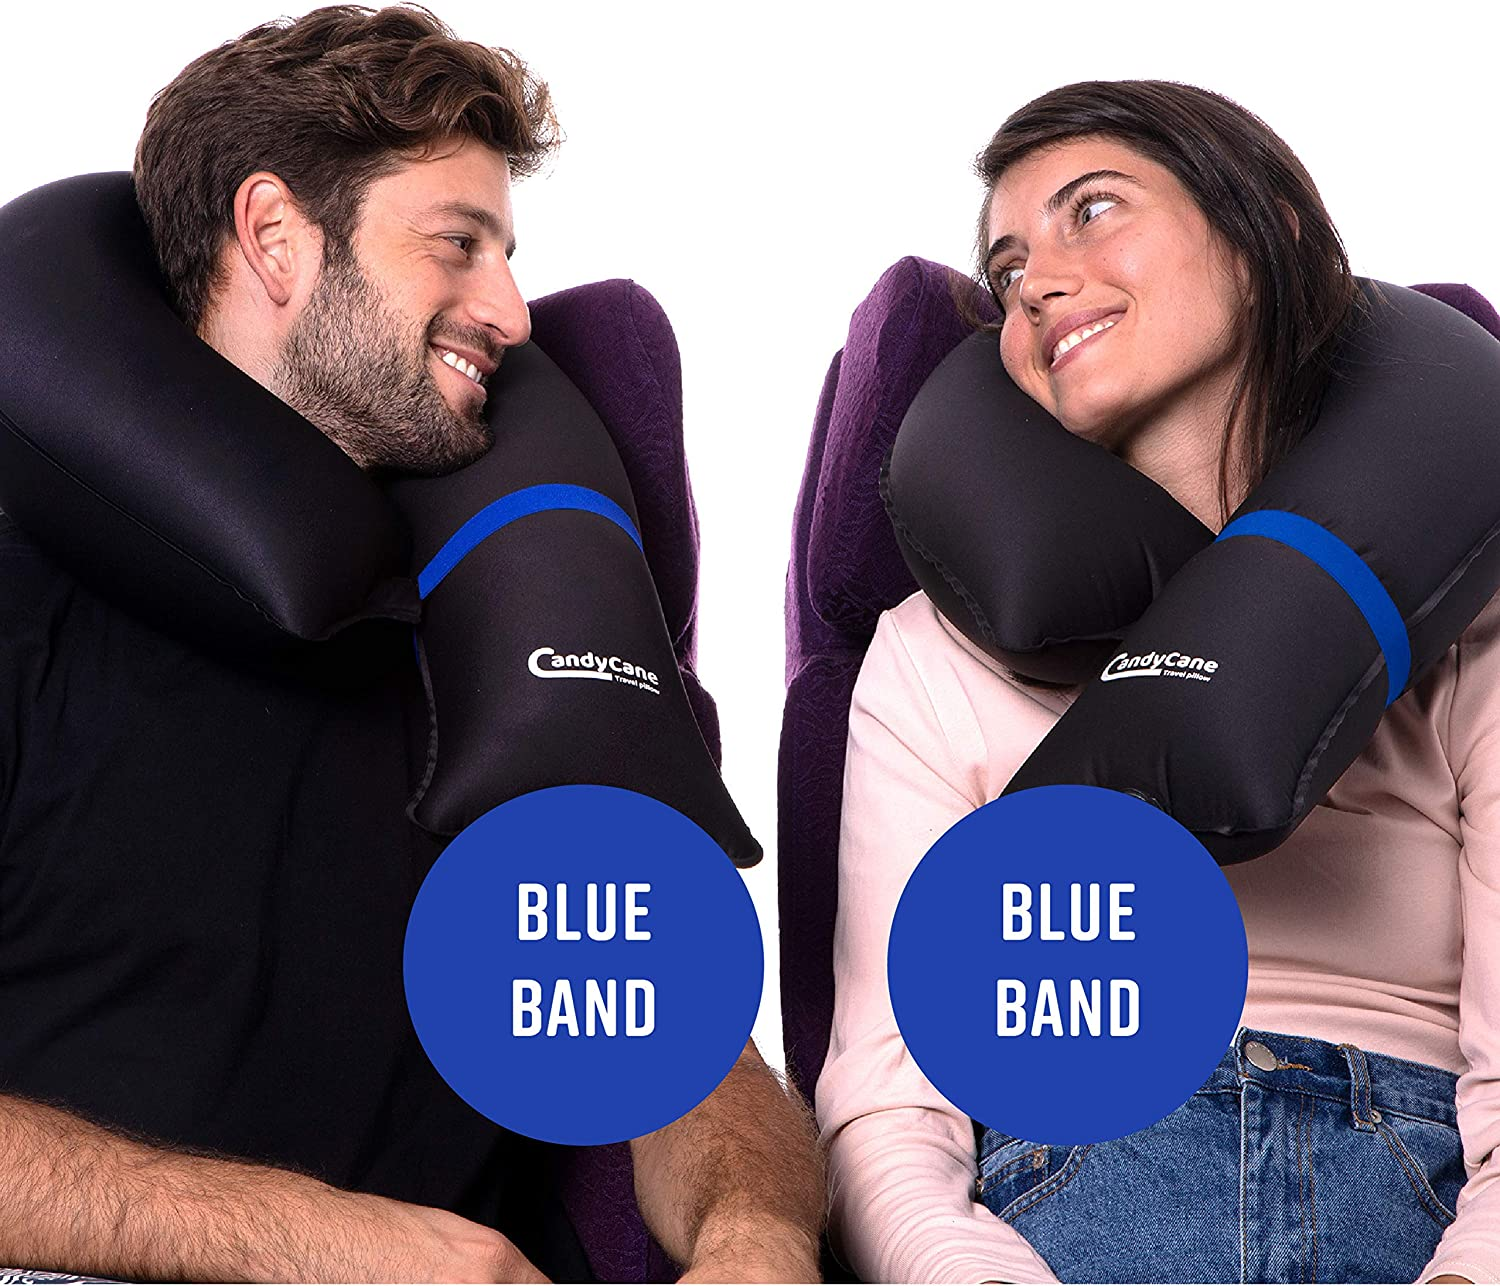 CANDY CANE 2Pack Blue Inflatable Travel Pillows - Ultra Compact and Modular for Airplane, Trains, Cars and Camping - Adjustable Supporting One-Size-Fits-All with Portable Carrying Bag (2xBlue)